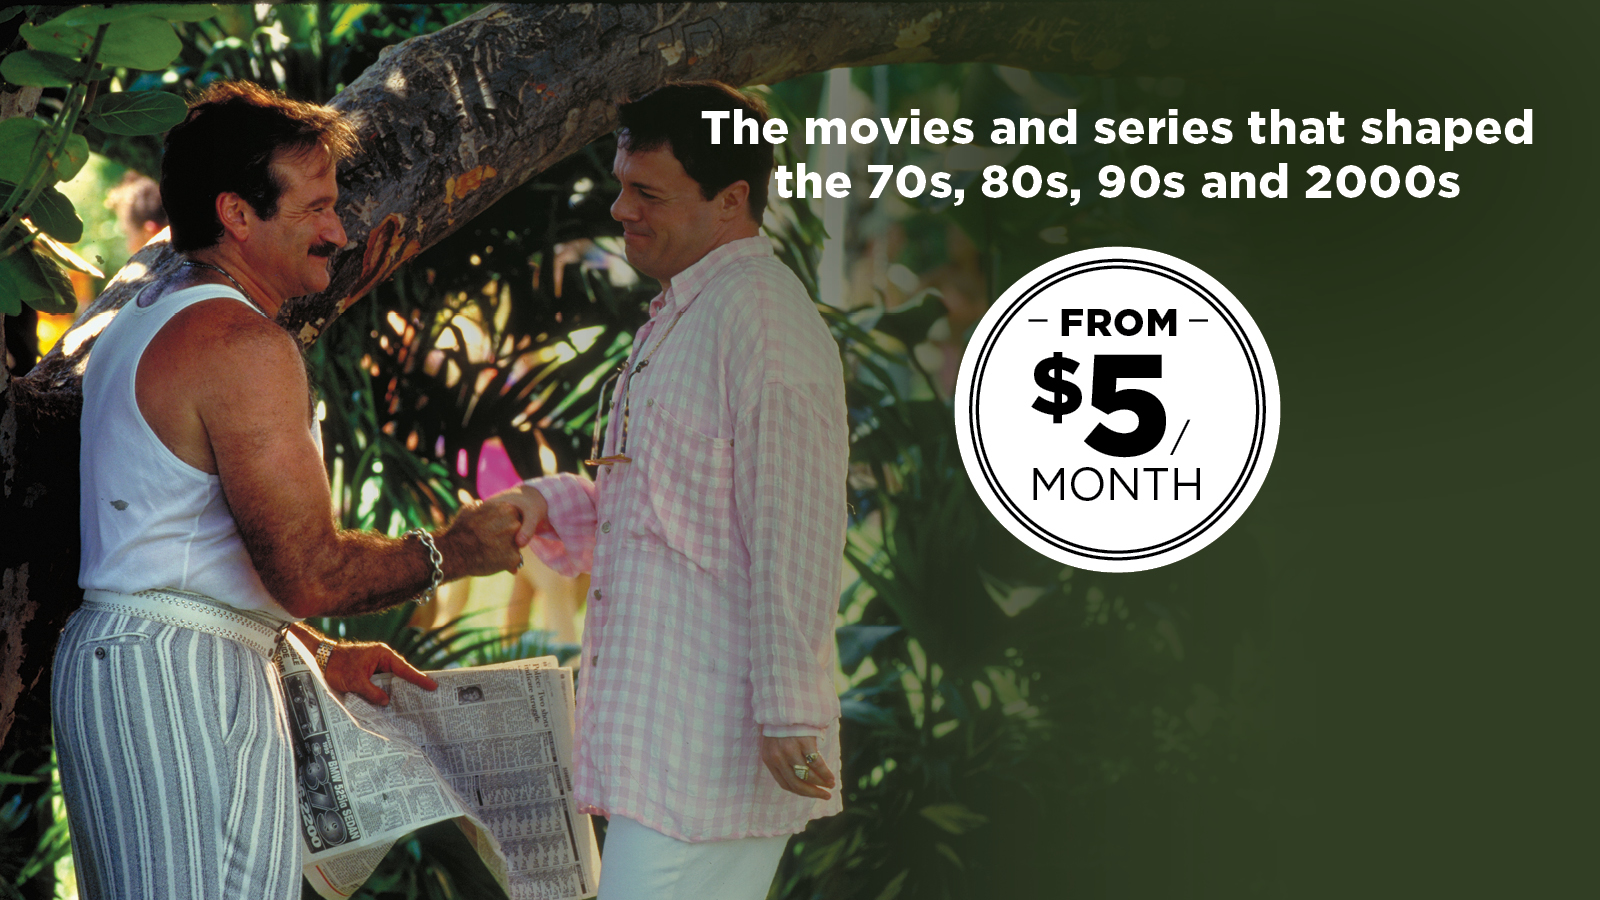 The movies and series that shaped the 70s, 80s, 90s and 00s. From $5/month